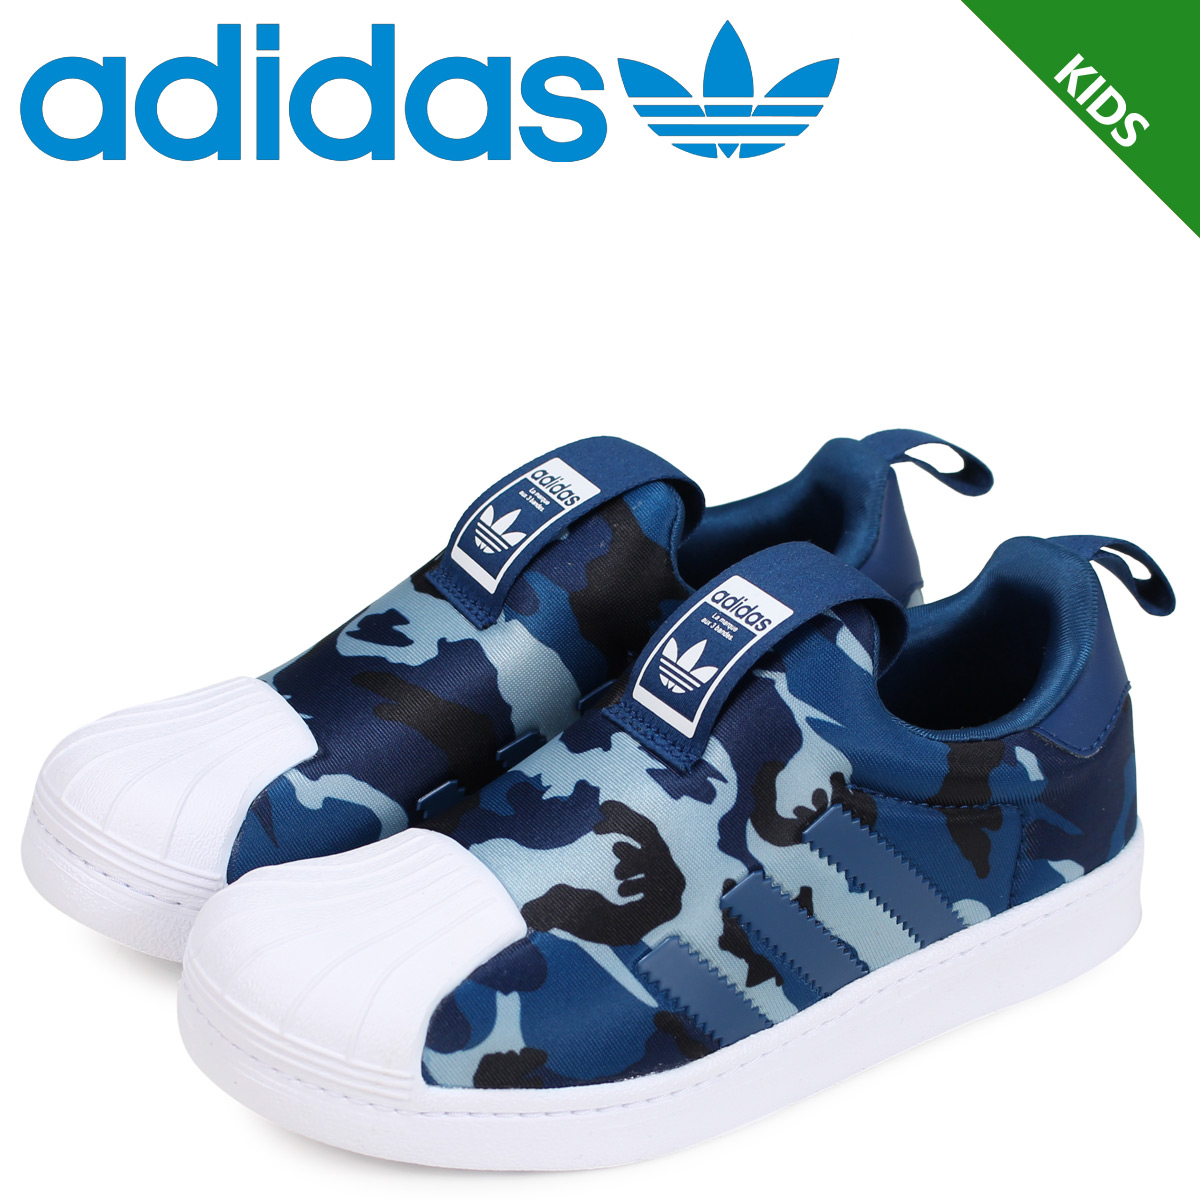 detailed look ba98a d1984 adidas Originals superstar Adidas originals sneakers slip-ons kids SUPERSTAR  360 C CG6569 blue  12 18 Shinnyu load